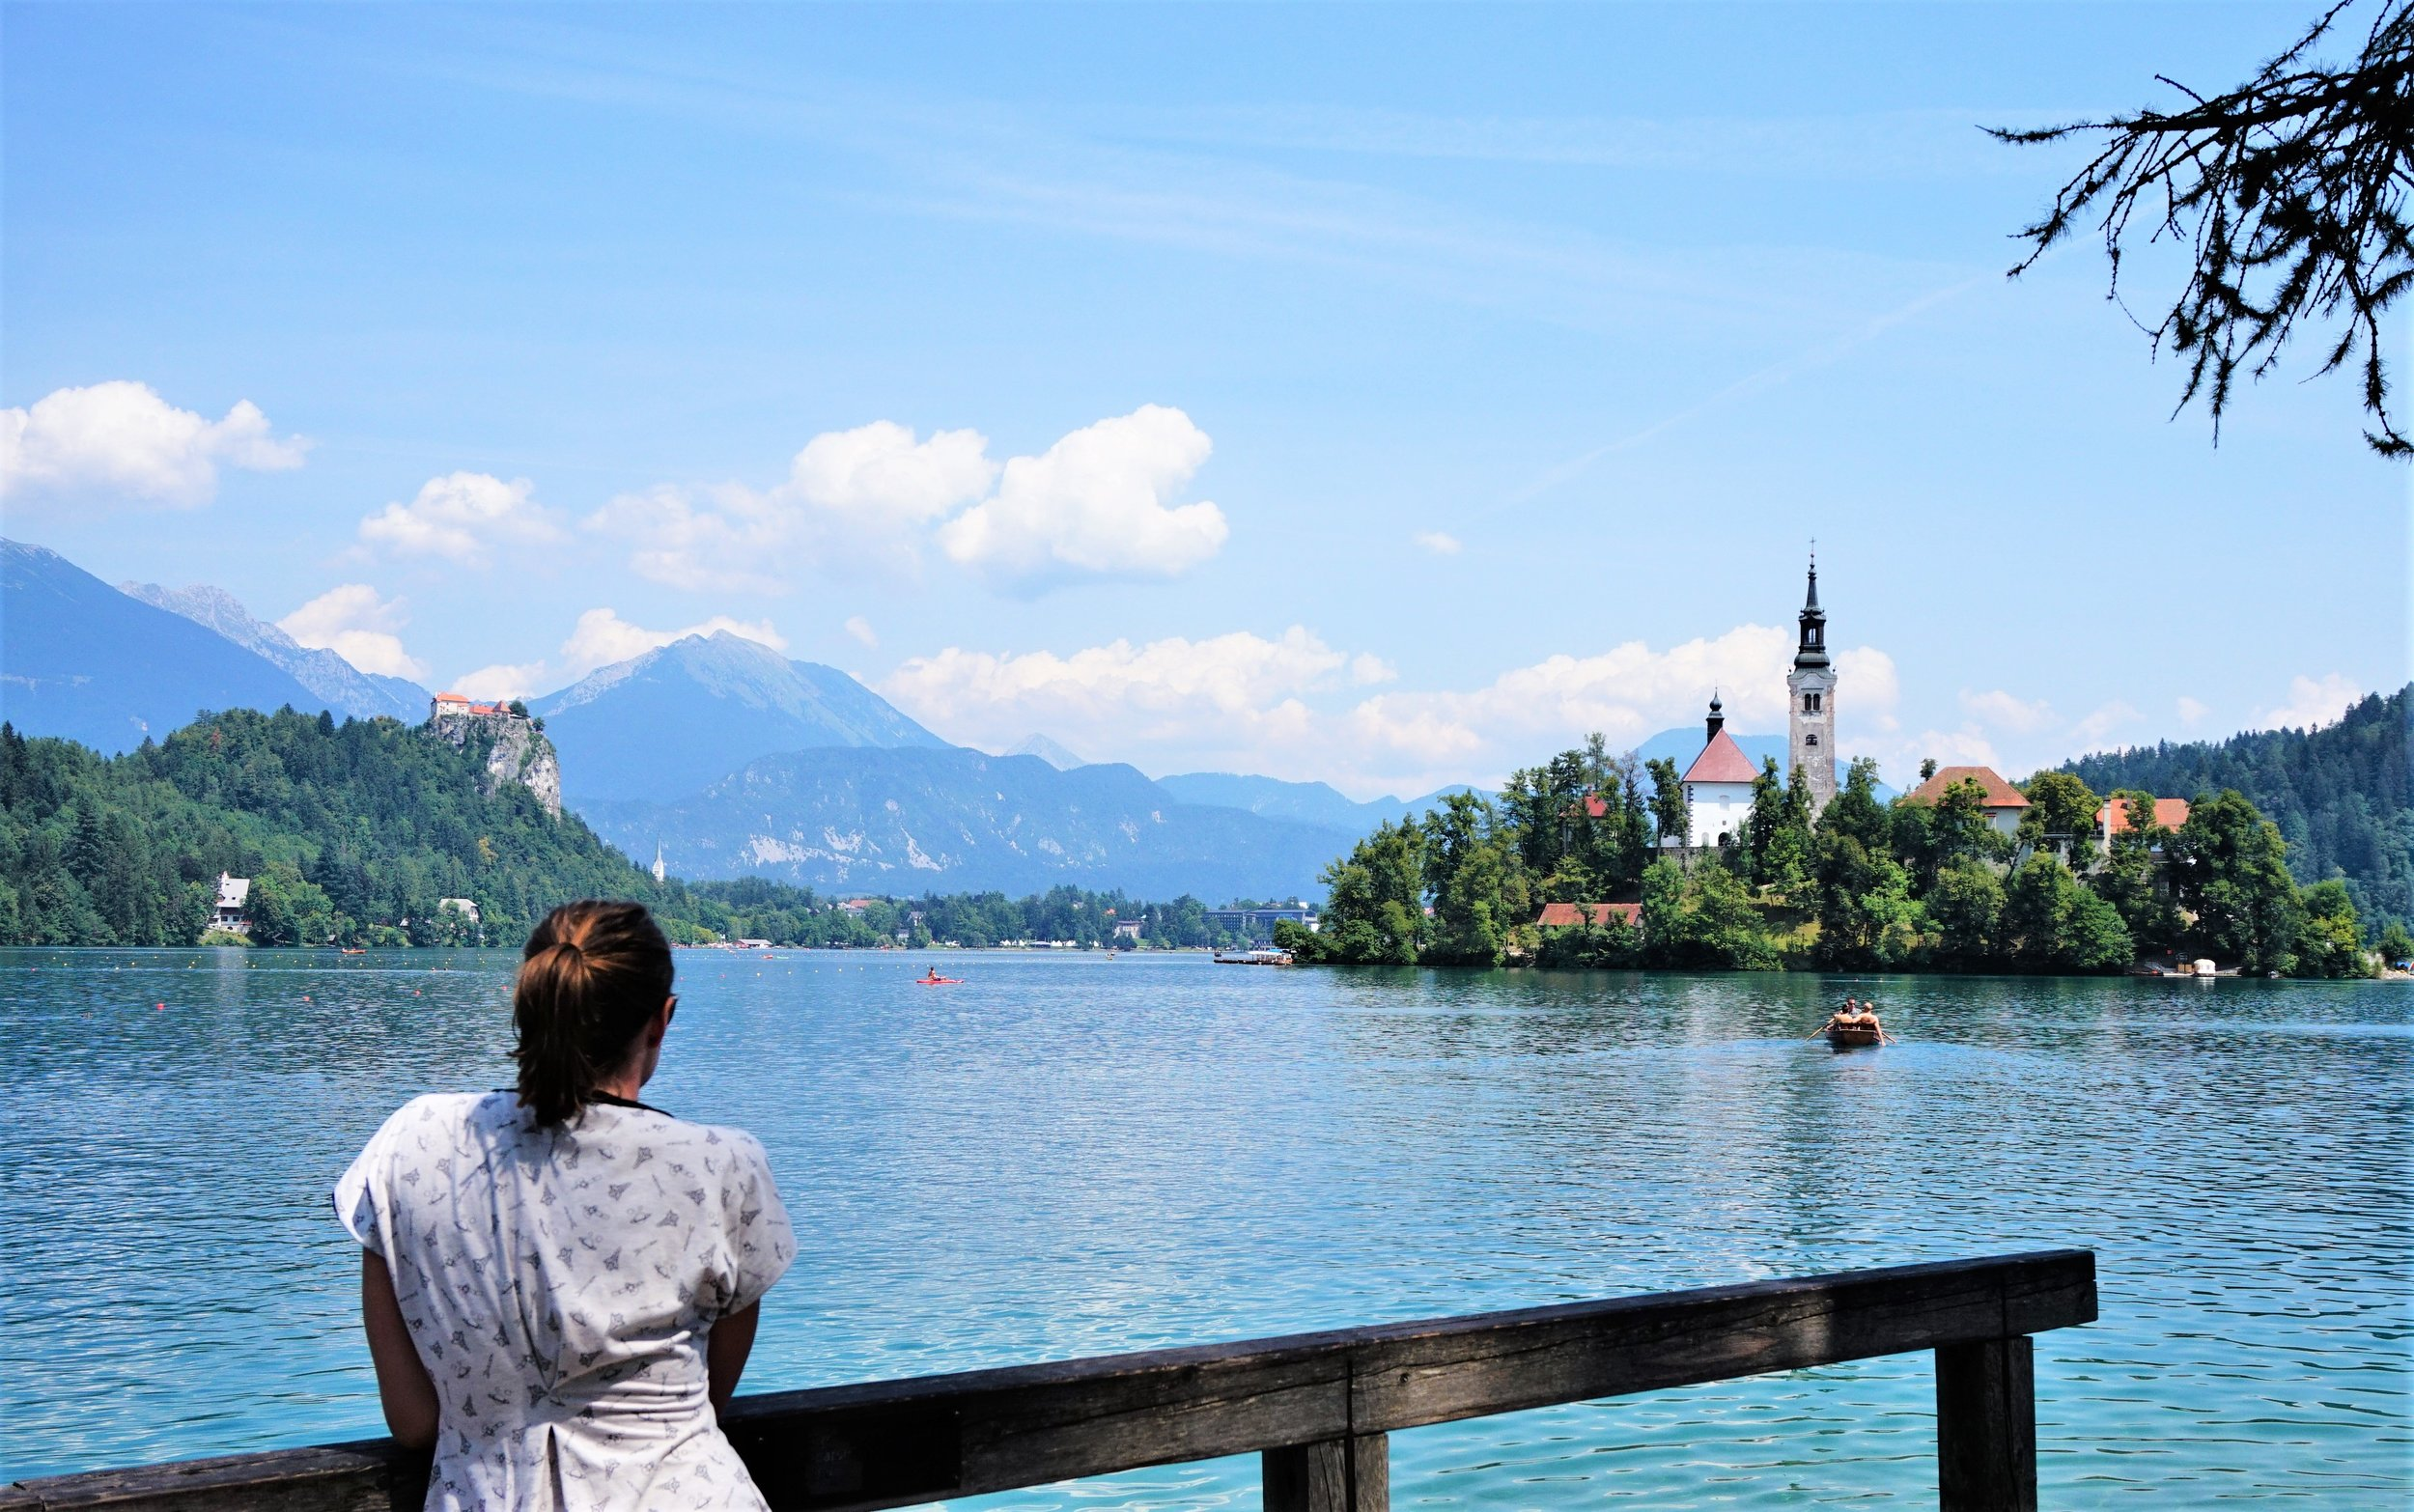 lake bled, slovenia is reachable as a day trip from Ljubljana